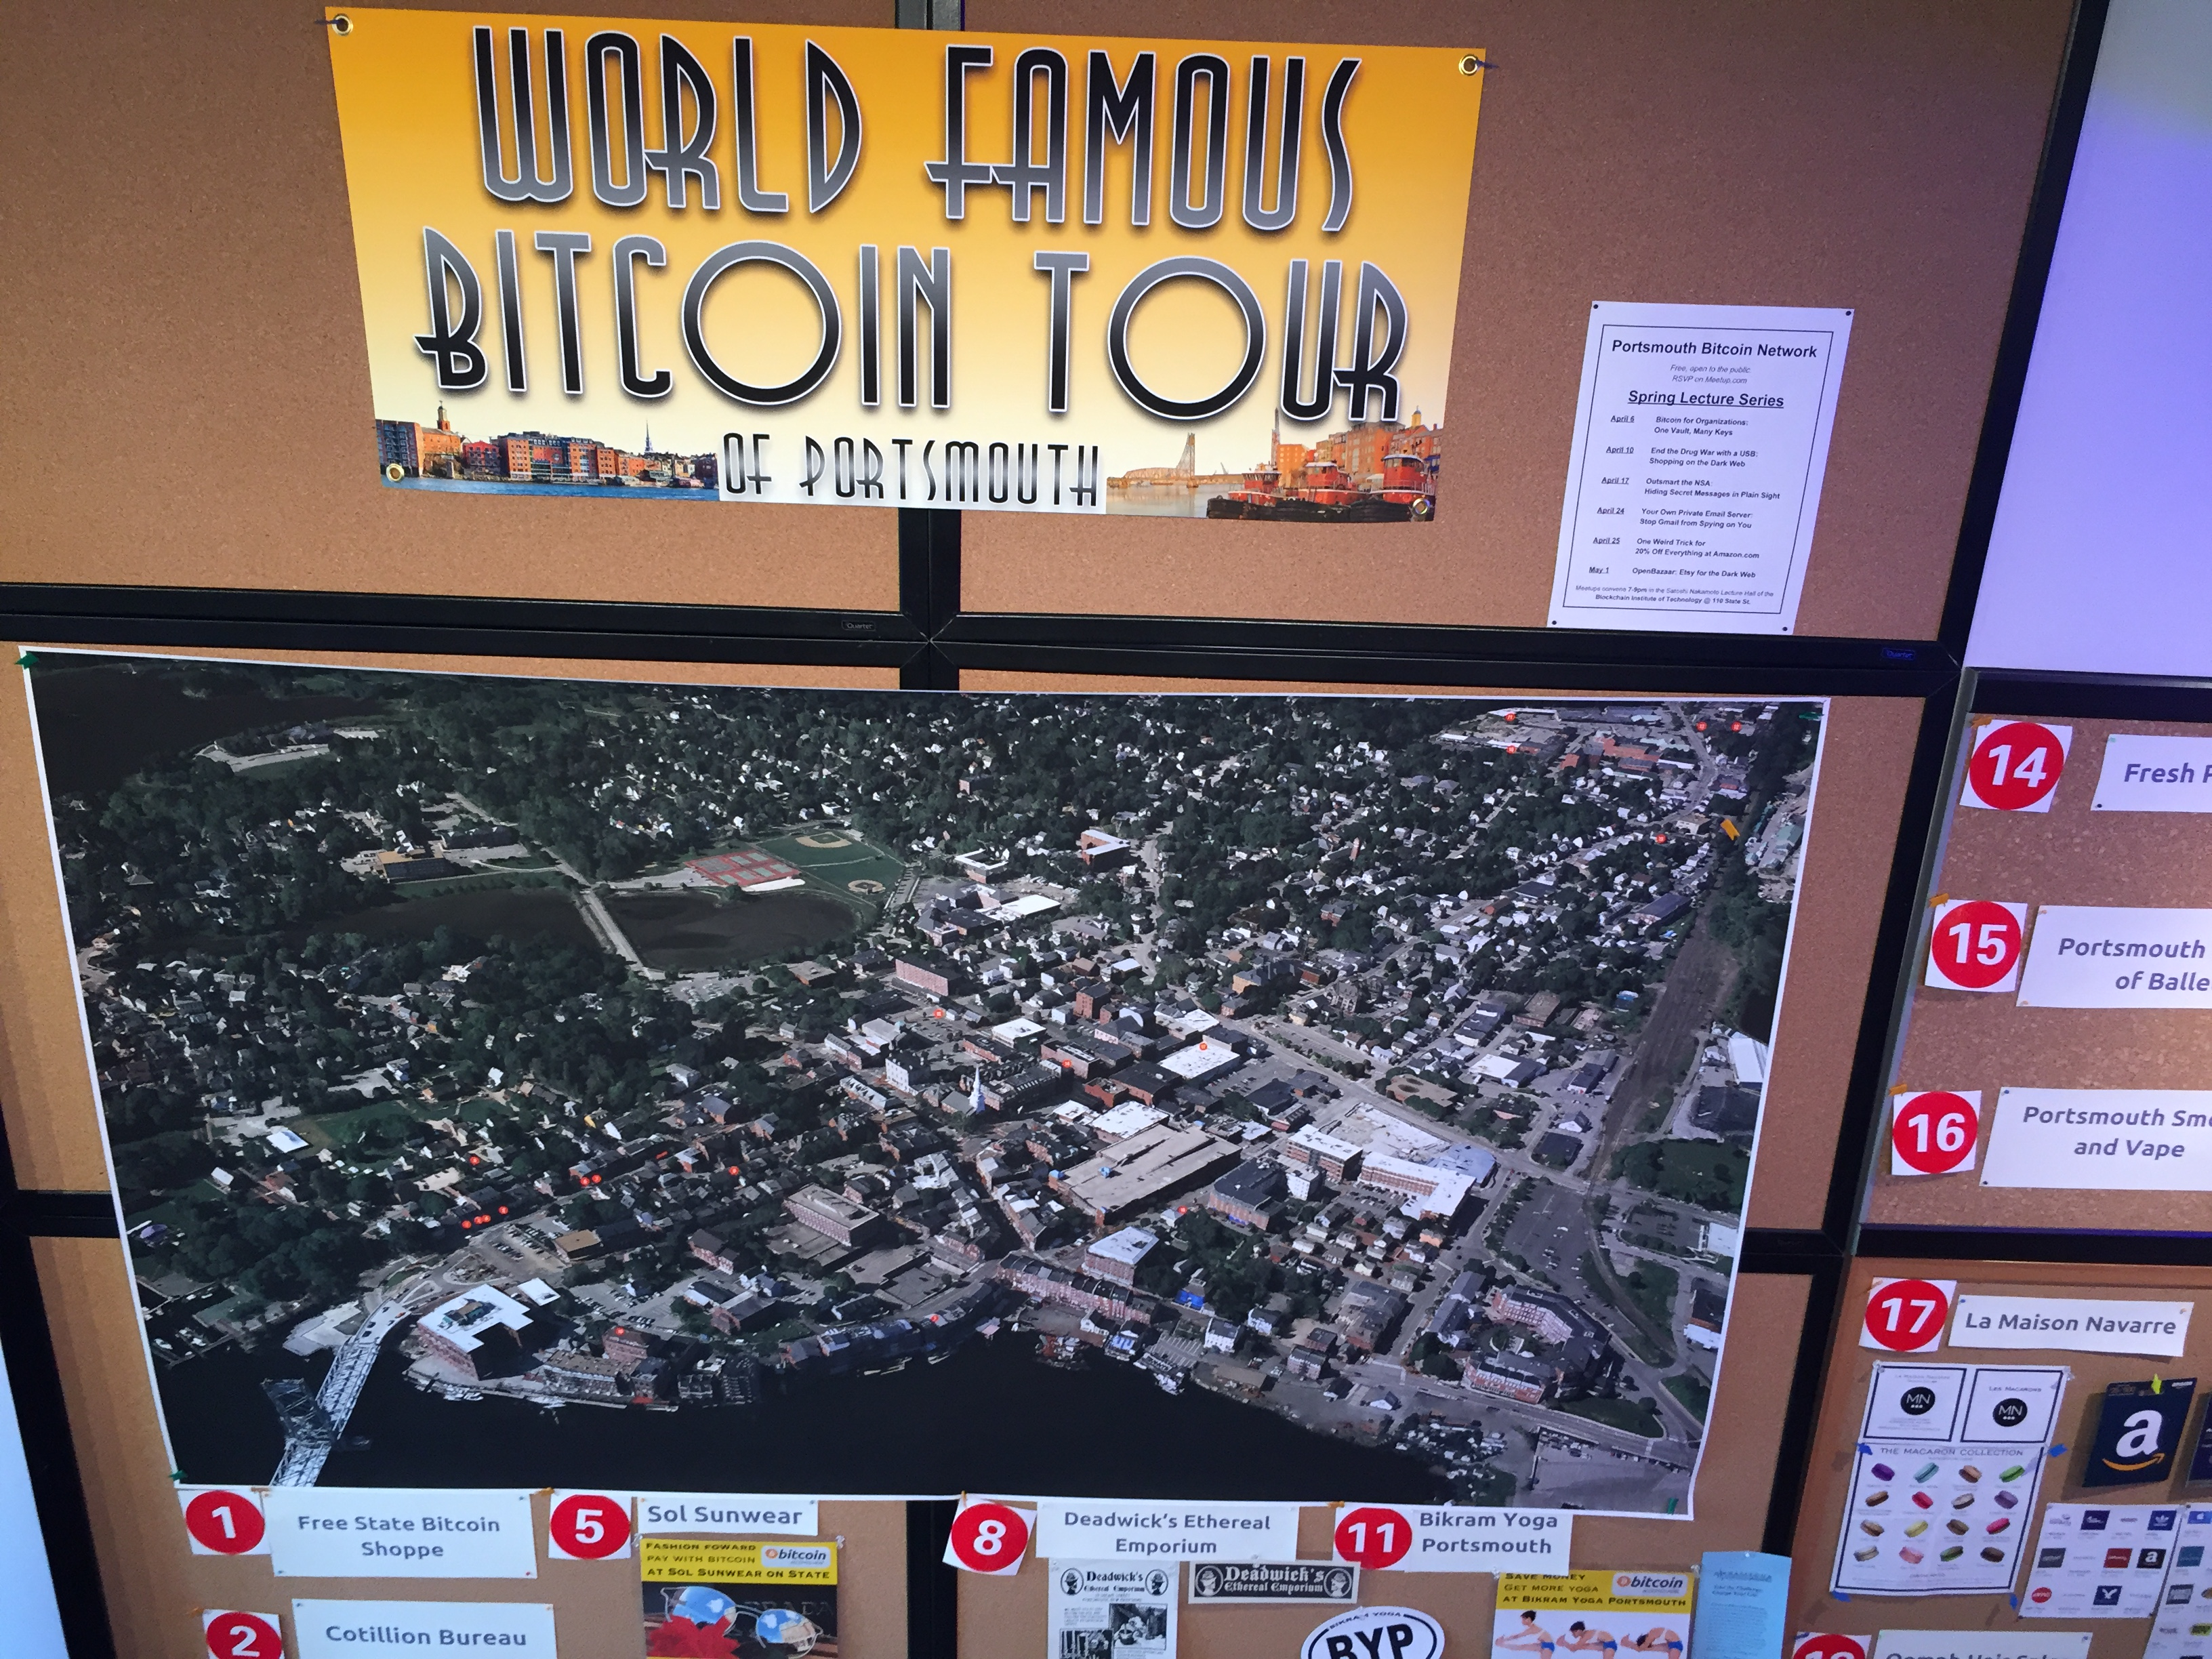 Join in The World Famous Bitcoin Tour!